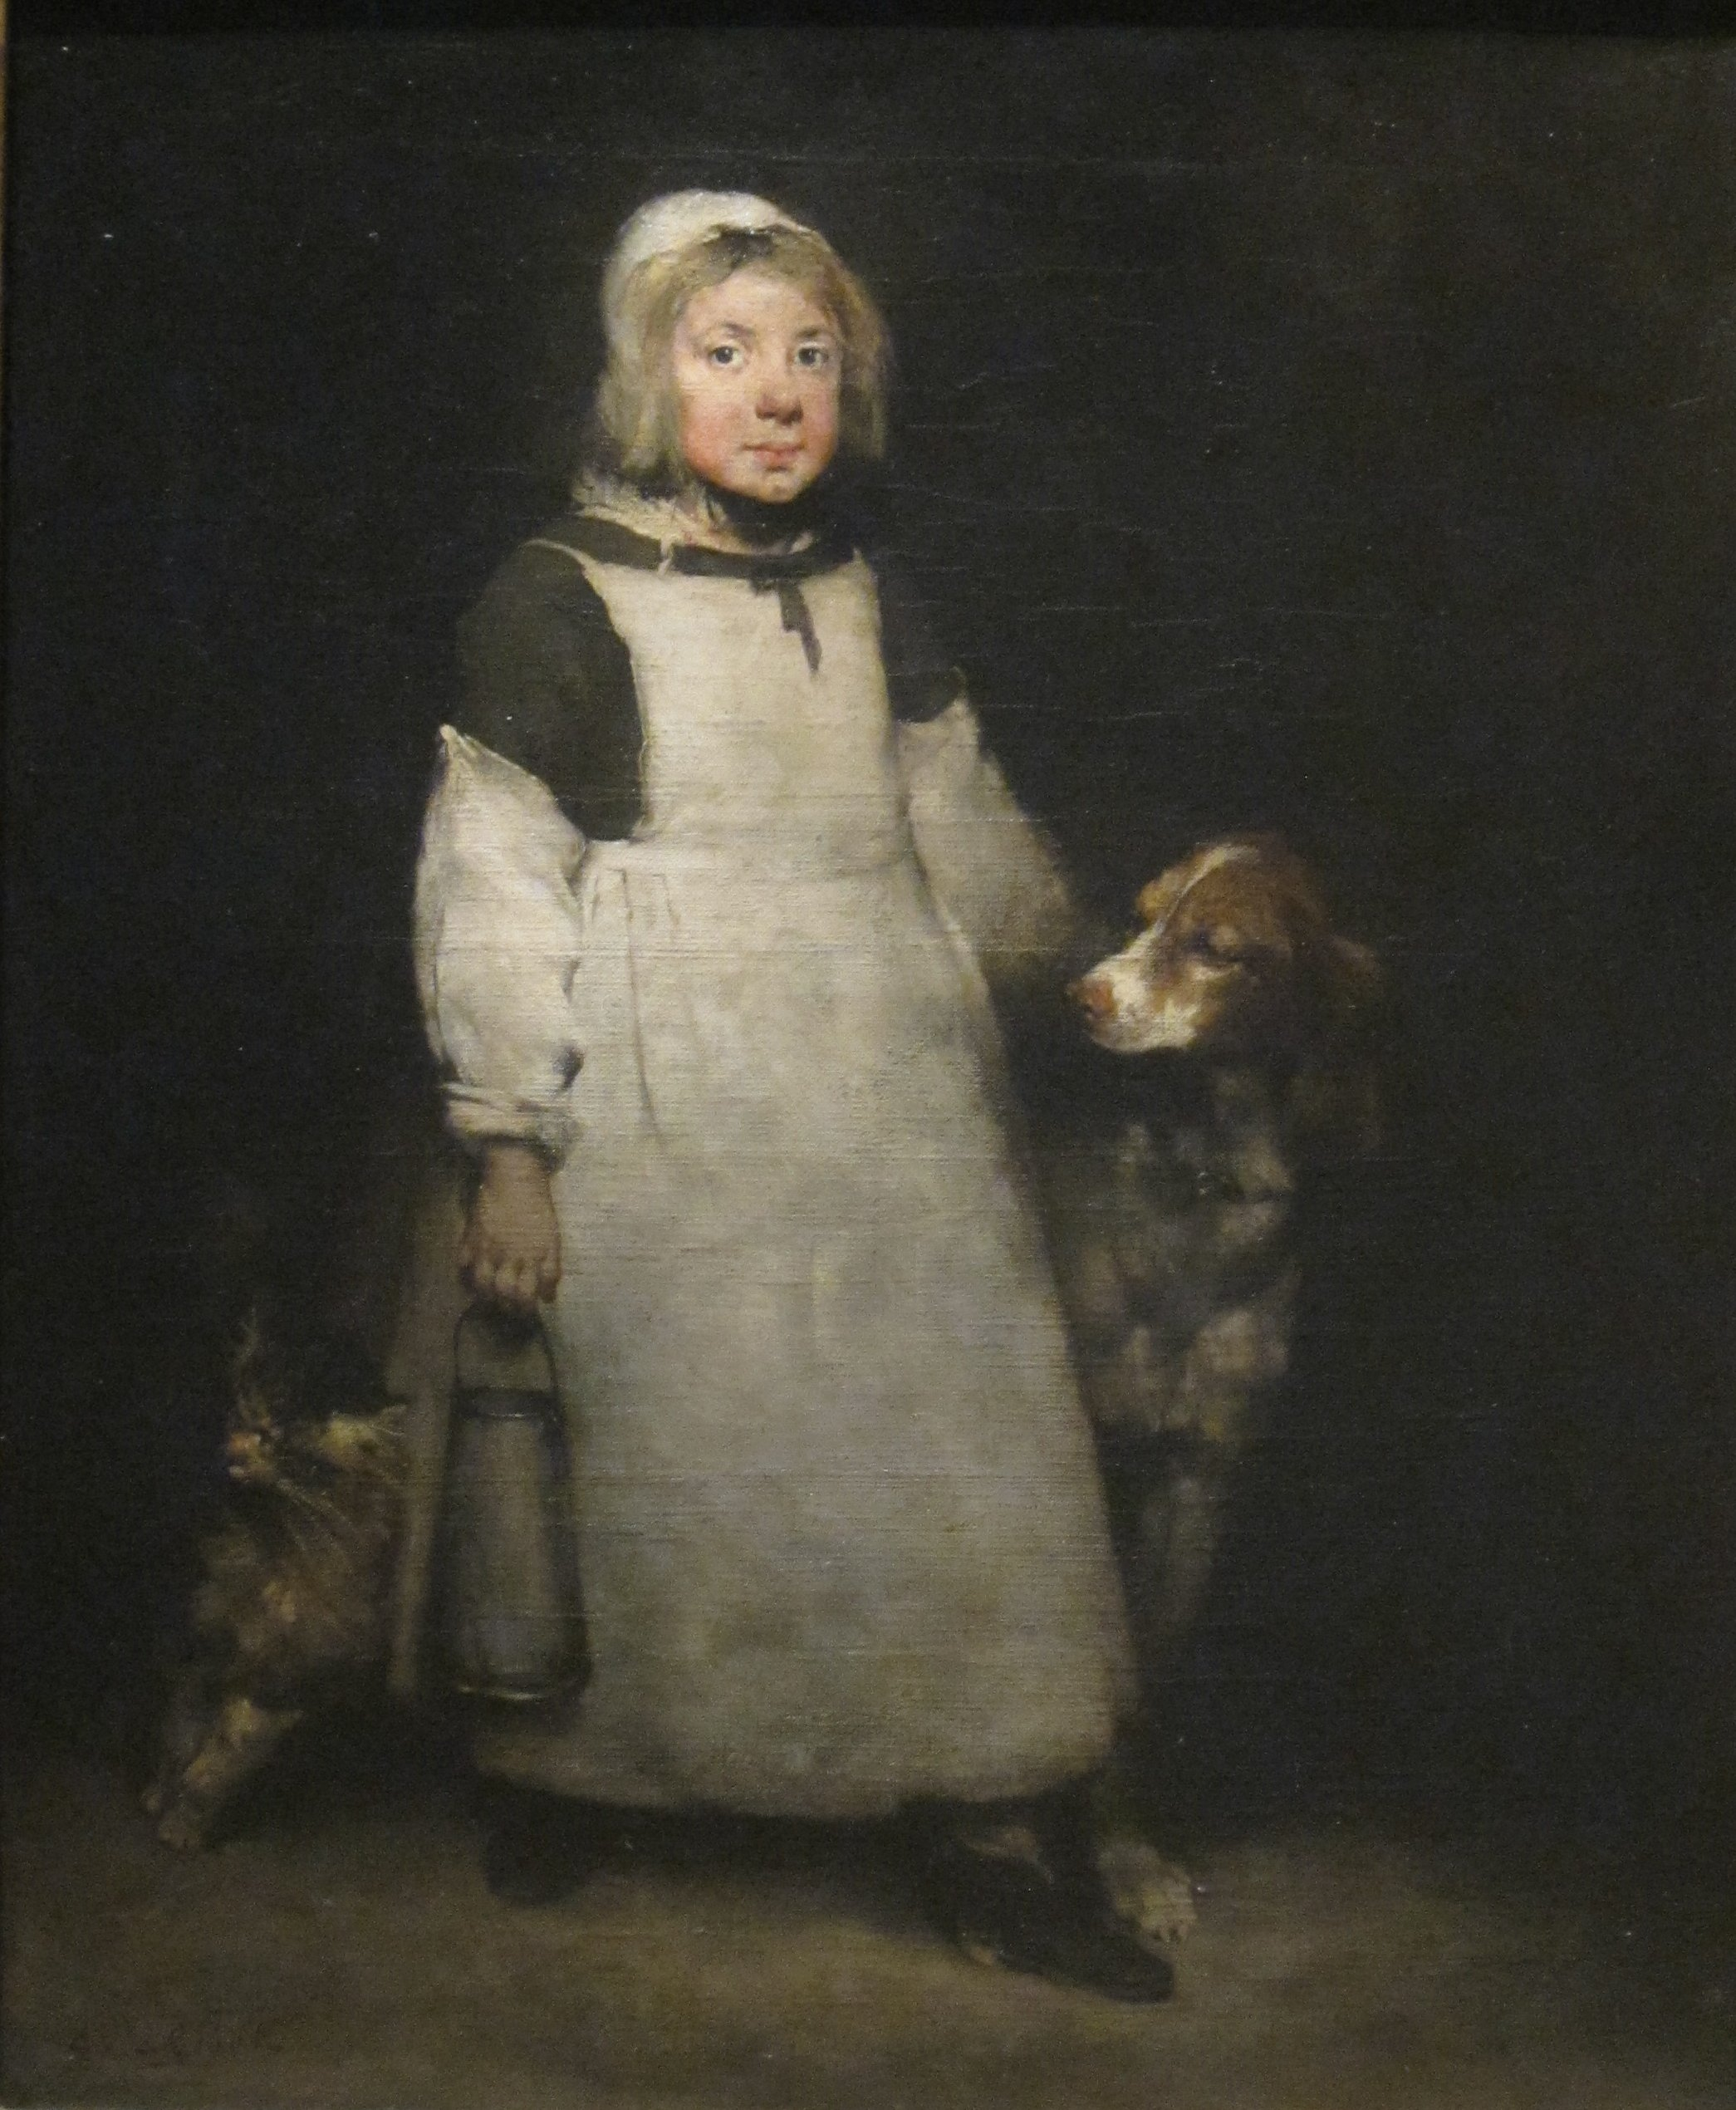 https://upload.wikimedia.org/wikipedia/commons/d/dc/The_Little_Milkmaid%2C_oil_painting_by_Th%C3%A9odule-Augustin_Ribot%2C_c._1865.JPG